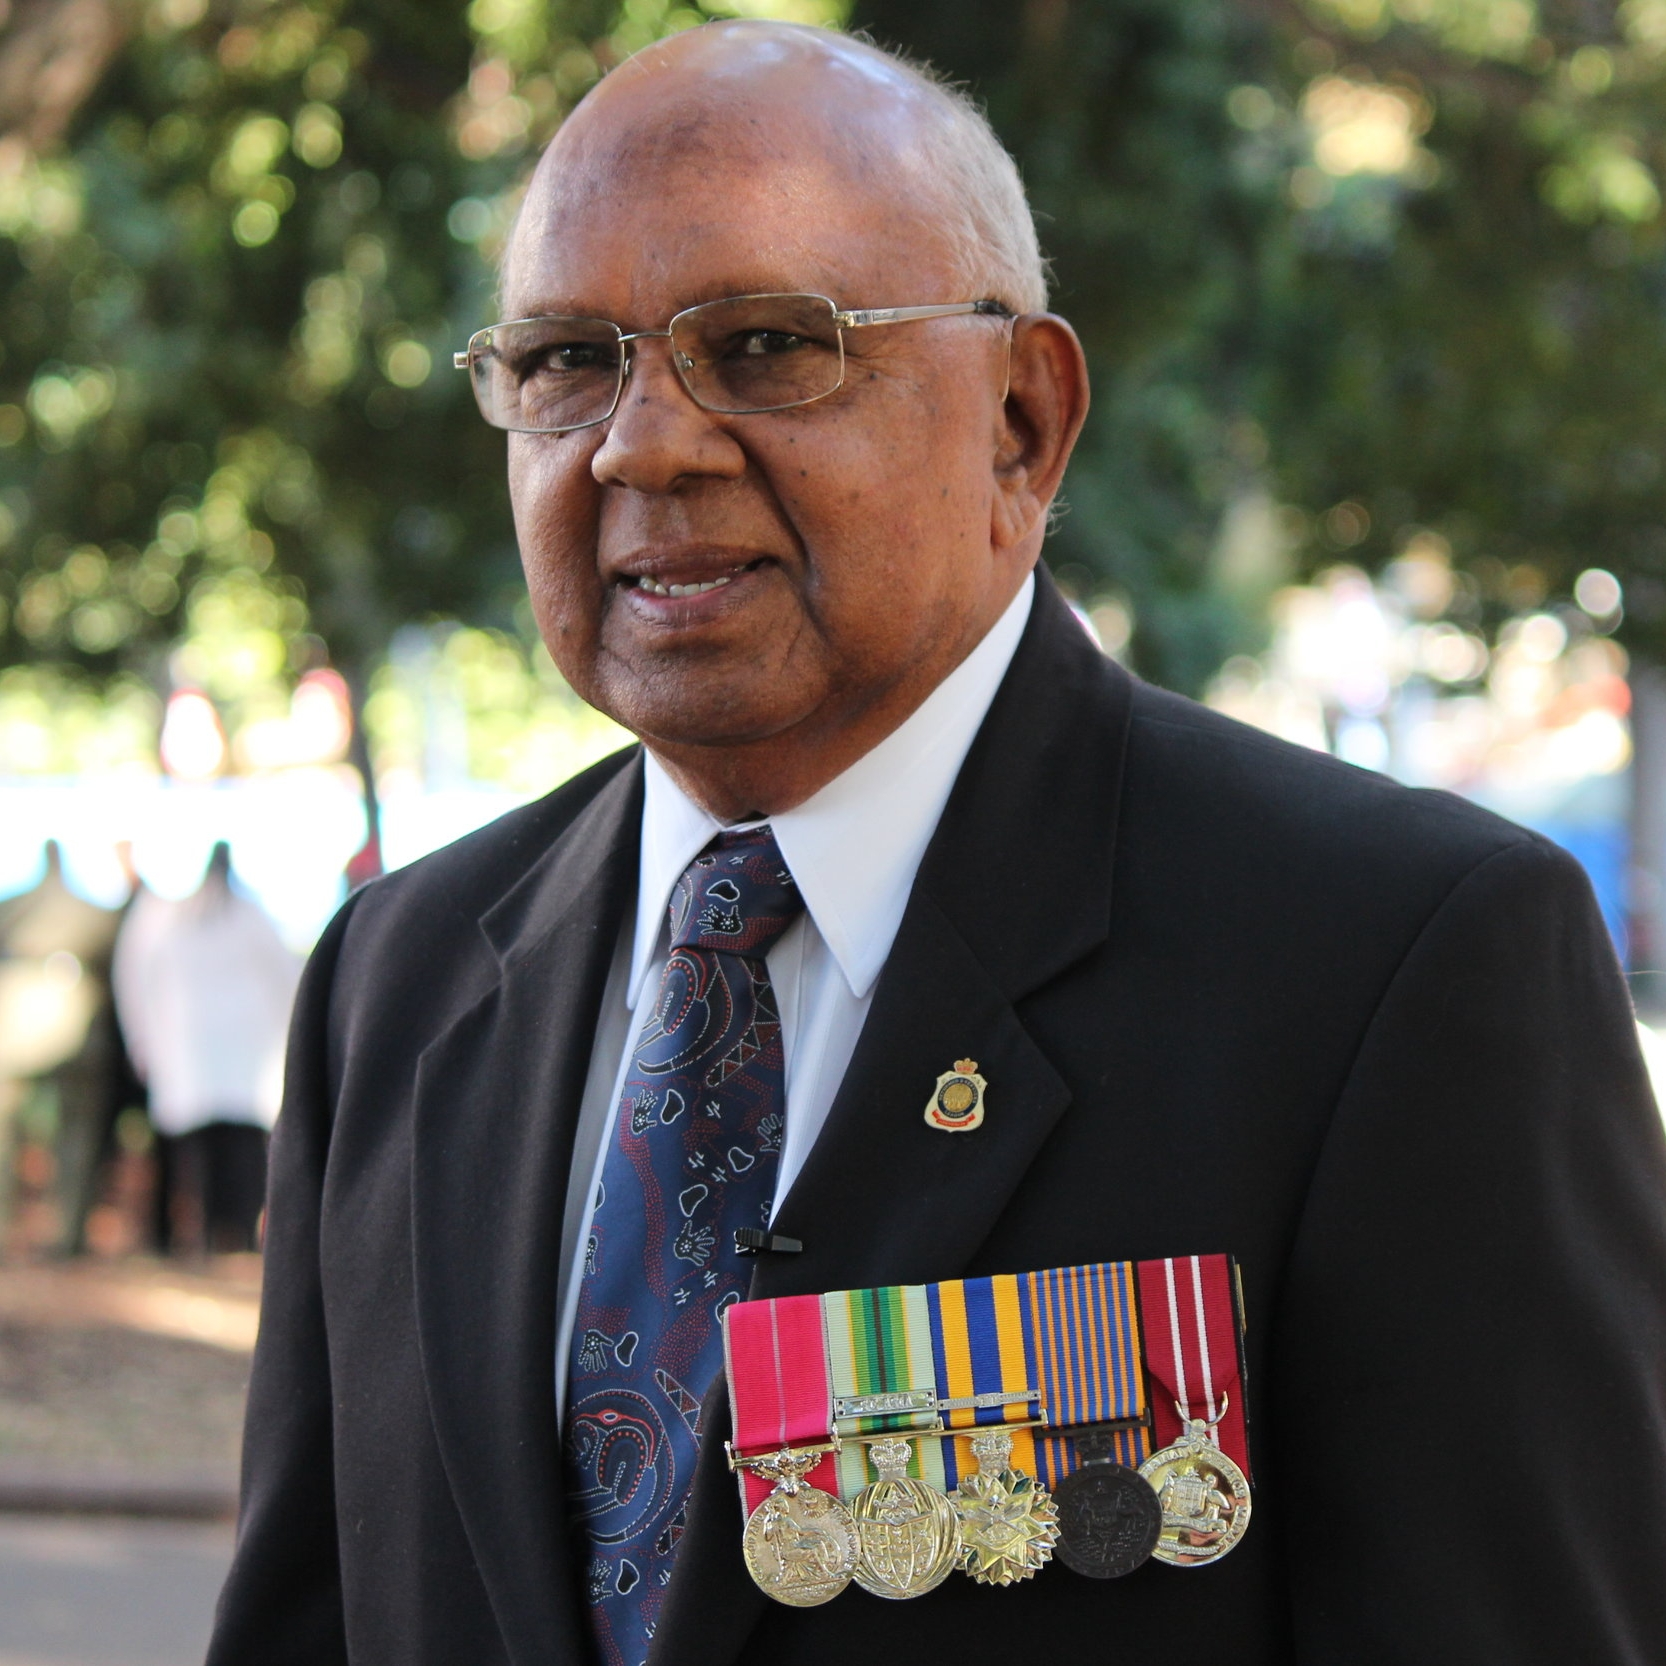 - Uncle Harry Allie, Cudjula Elder from Charters Towers, Townsville, Queensland. After working for the Post Master General's (PMG) Department, in 1966 Uncle Harry enlisted in the Royal Australian Air Force. During more than 23 and half years of service, he was posted throughout Australia, USA and Malaysia. He is a Committee Member of the Nangahmi Ngallia Aboriginal Corporation, Coloured Diggers Projects and the Chair of the NSW coordinating committee for the ceremony honouring the service of Aboriginal and Torres Strait Islander Servicemen and Servicewomen.